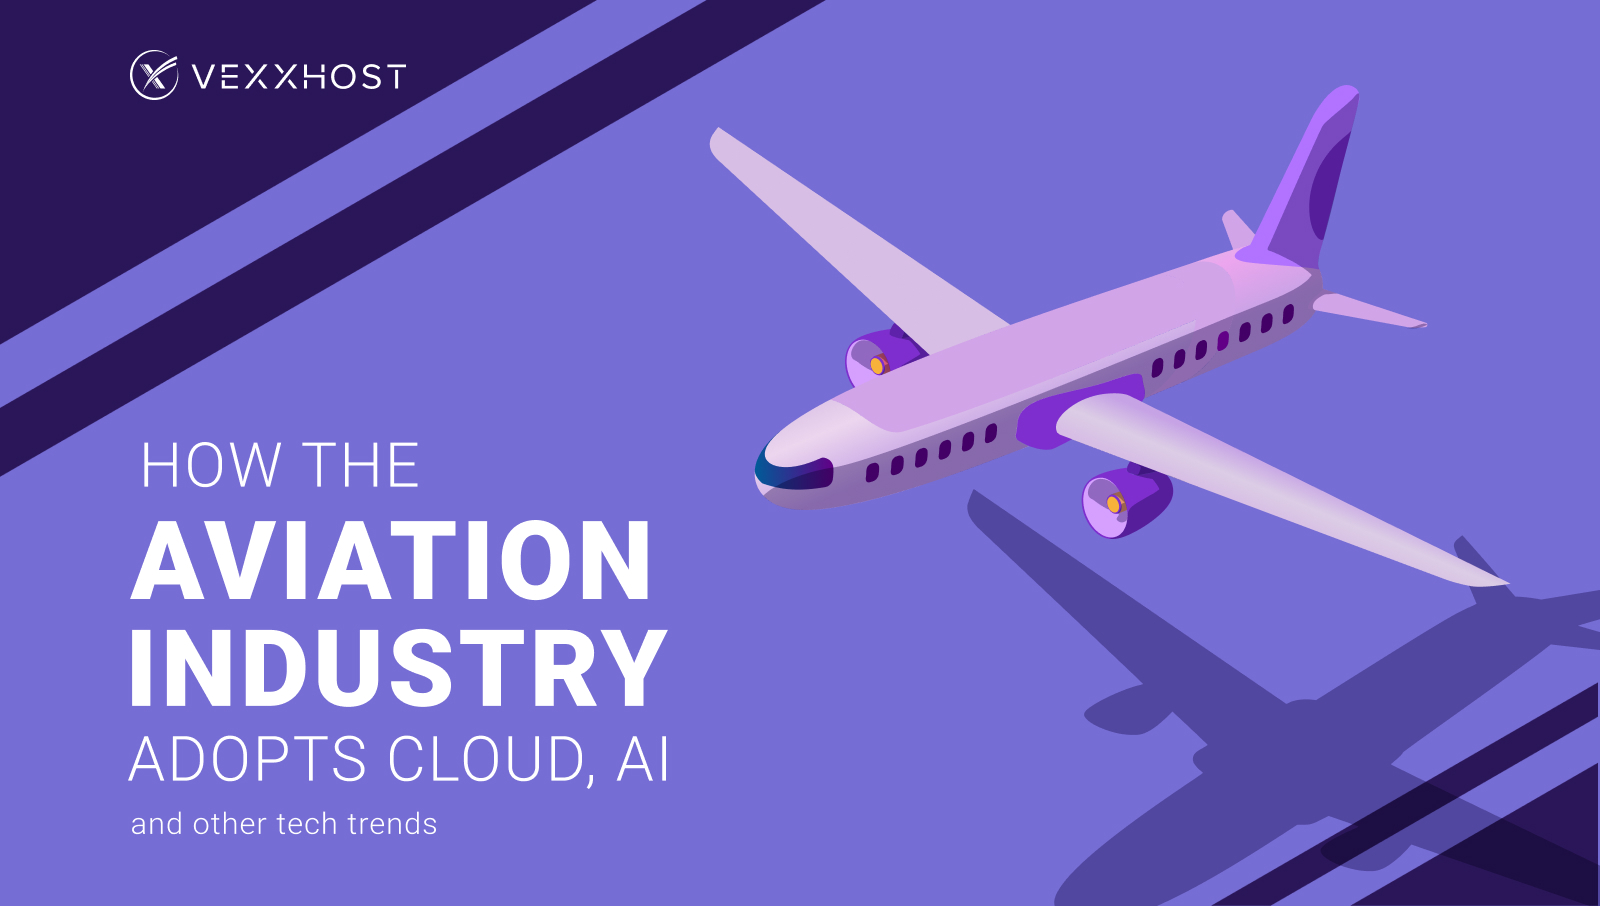 How the Aviation Industry Adopts Cloud, AI, and Other Tech Trends